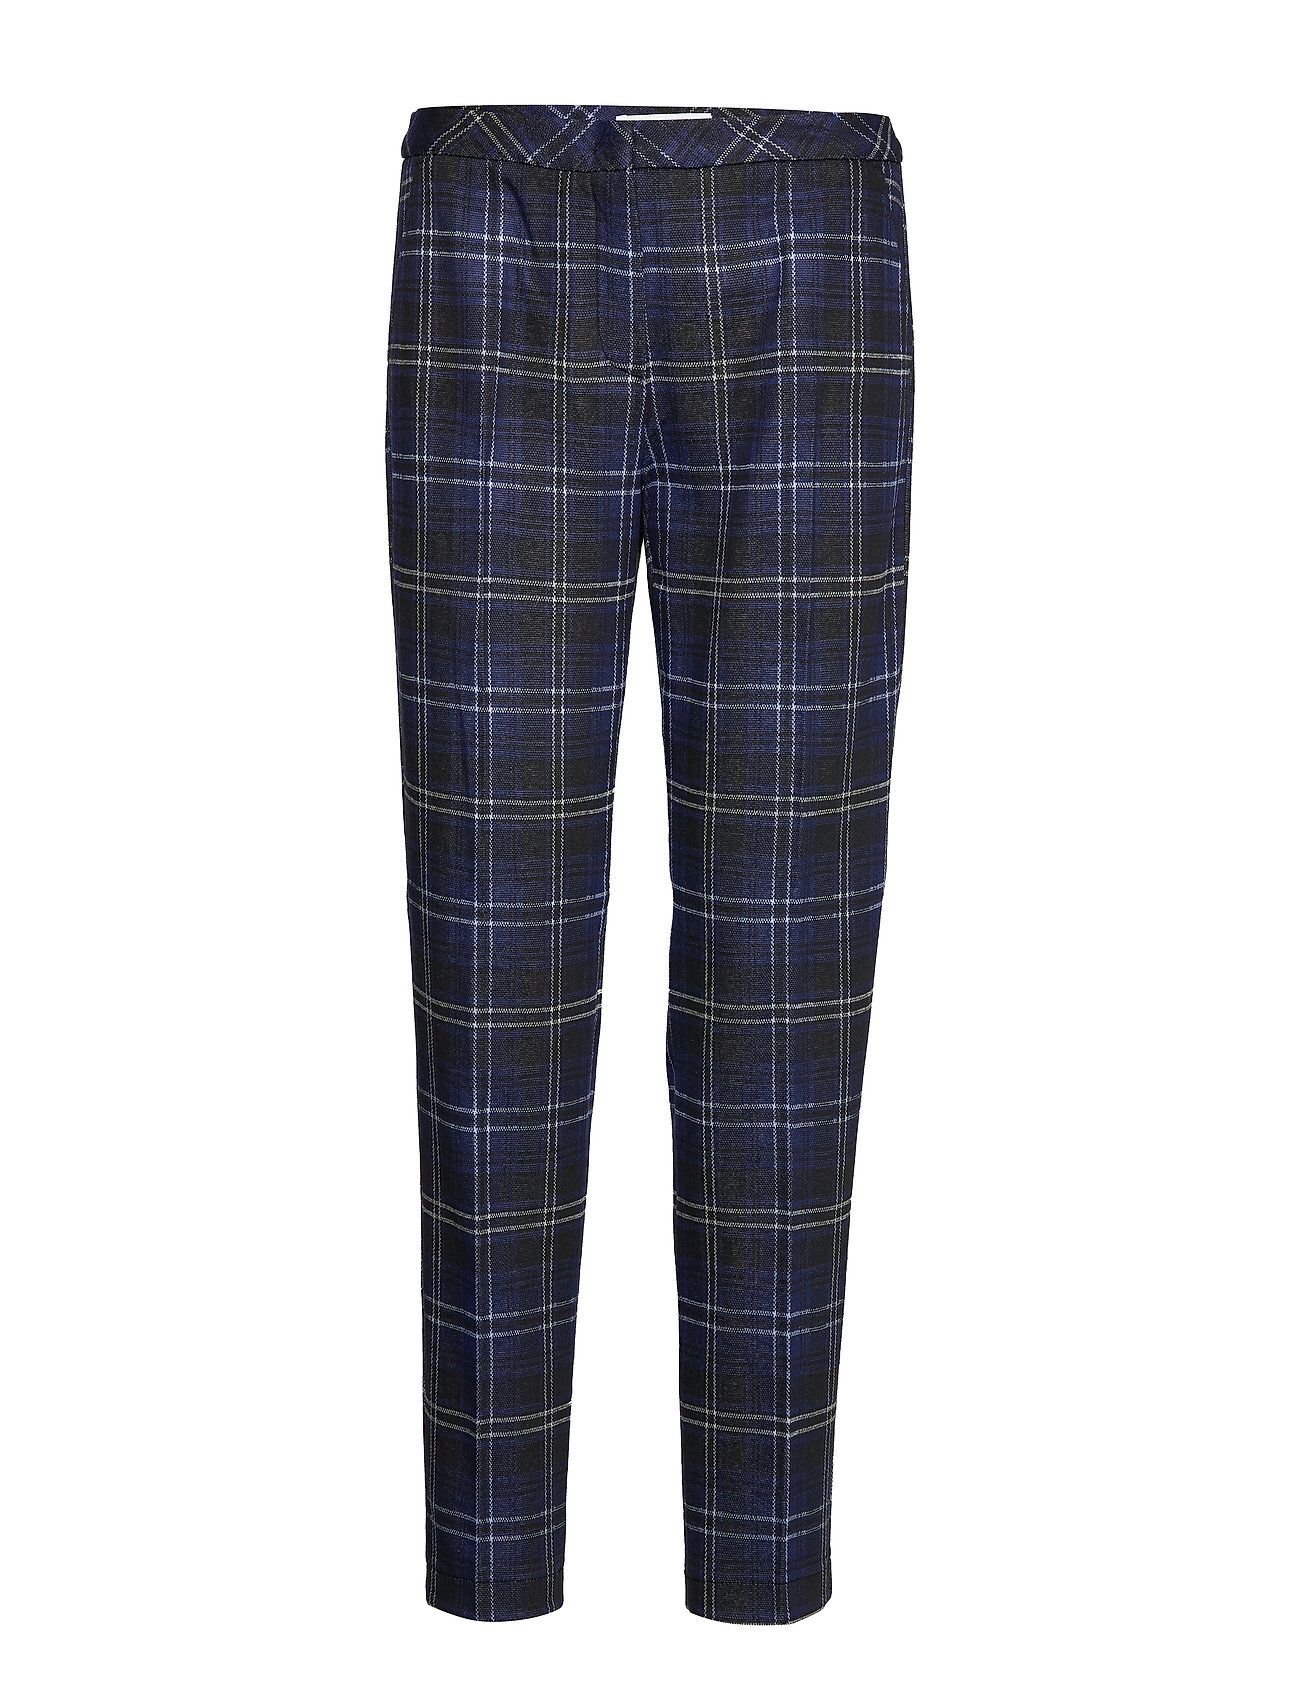 Gerry Weber Edition CROP LEISURE TROUSER - BLUE/BLACK/RUST/GREY